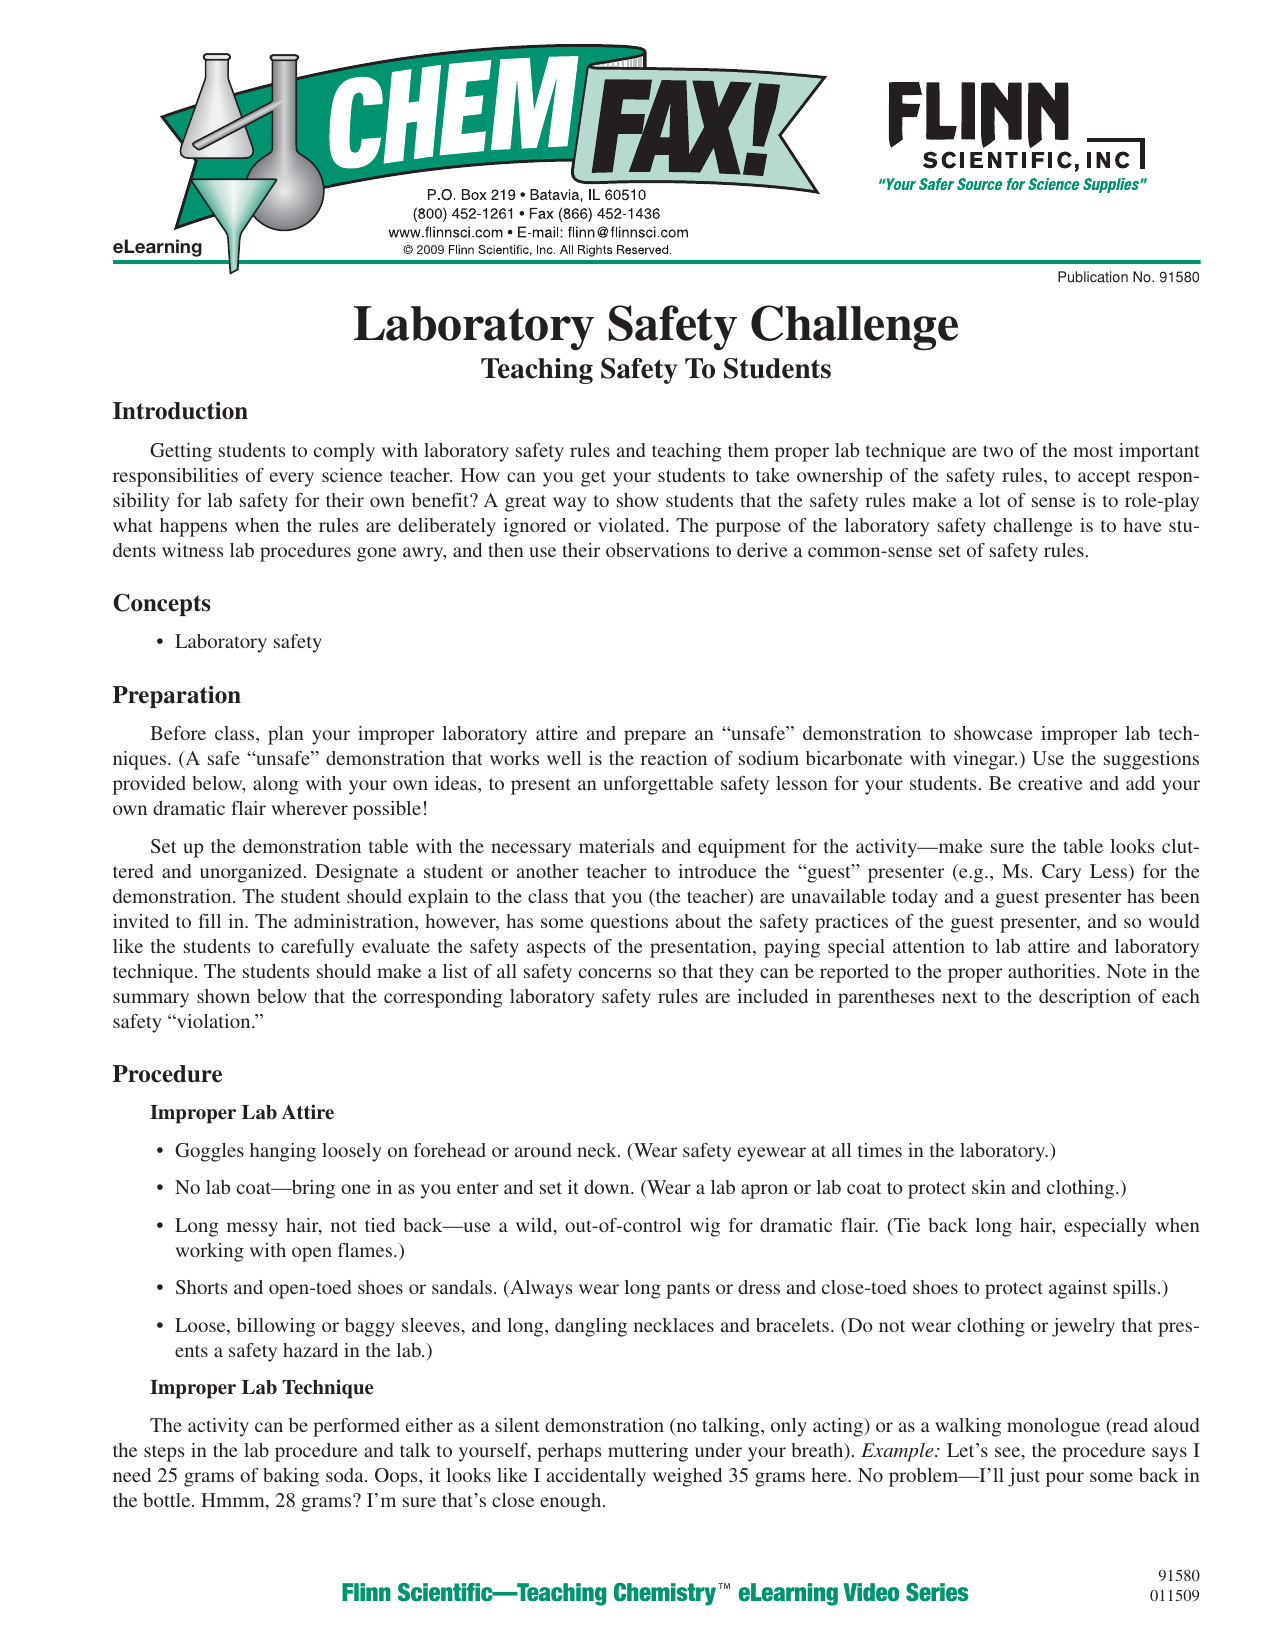 flinn scientific s student safety contract test answers